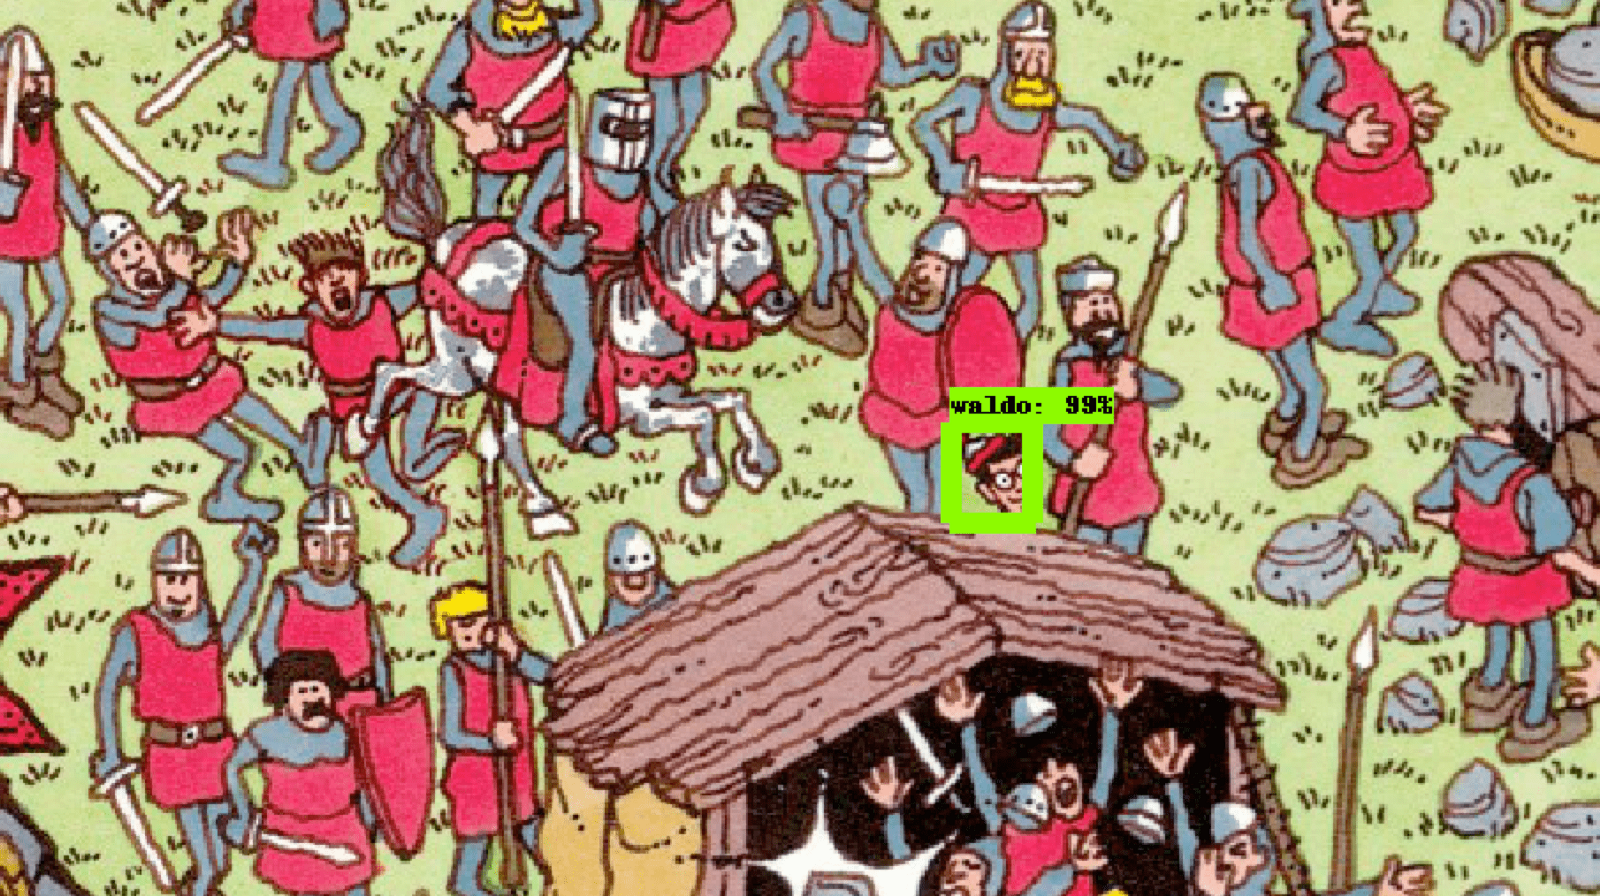 How to Find Wally with a Neural Network